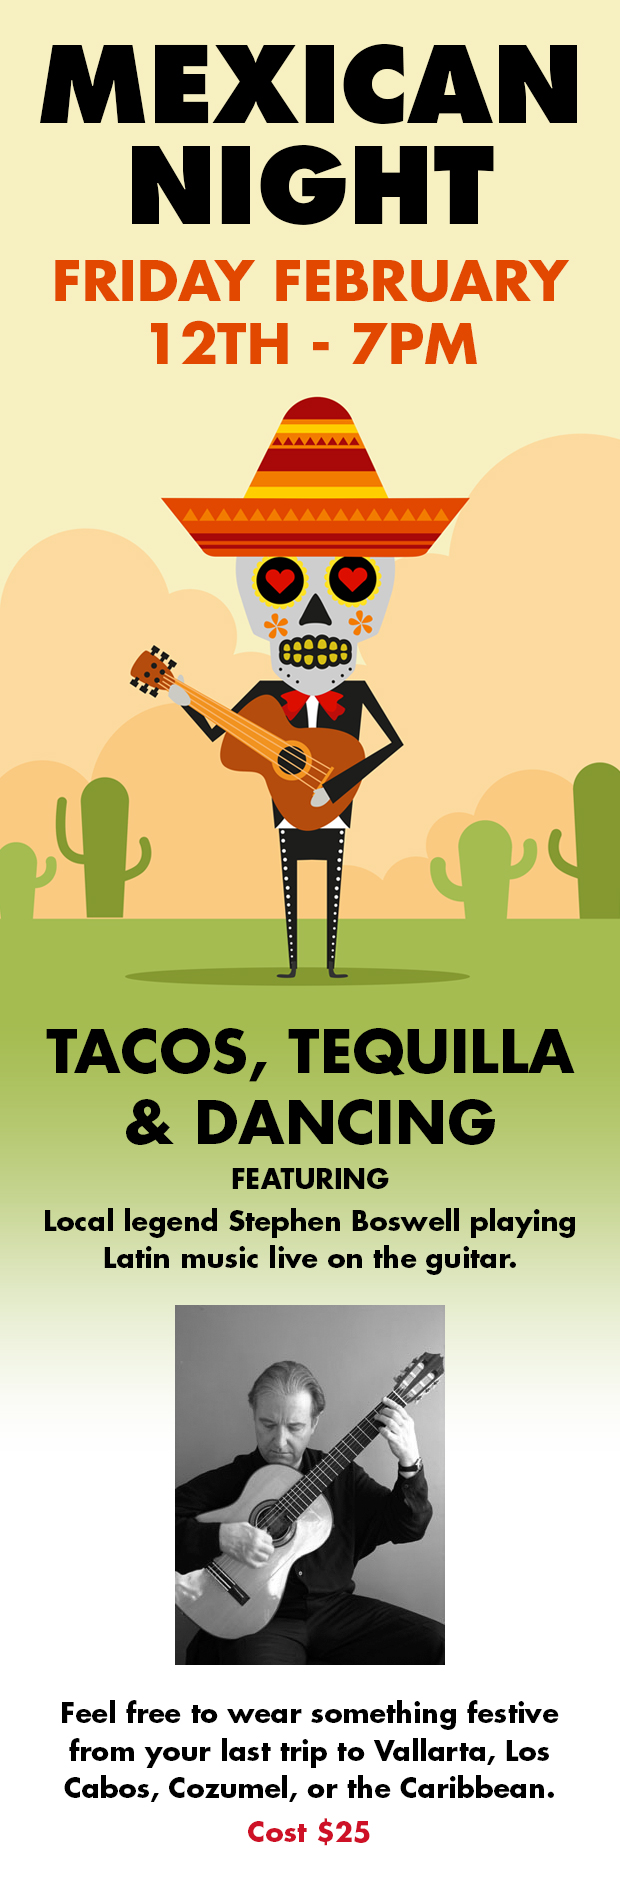 Mexican Night, Friday 12th February at 7pm